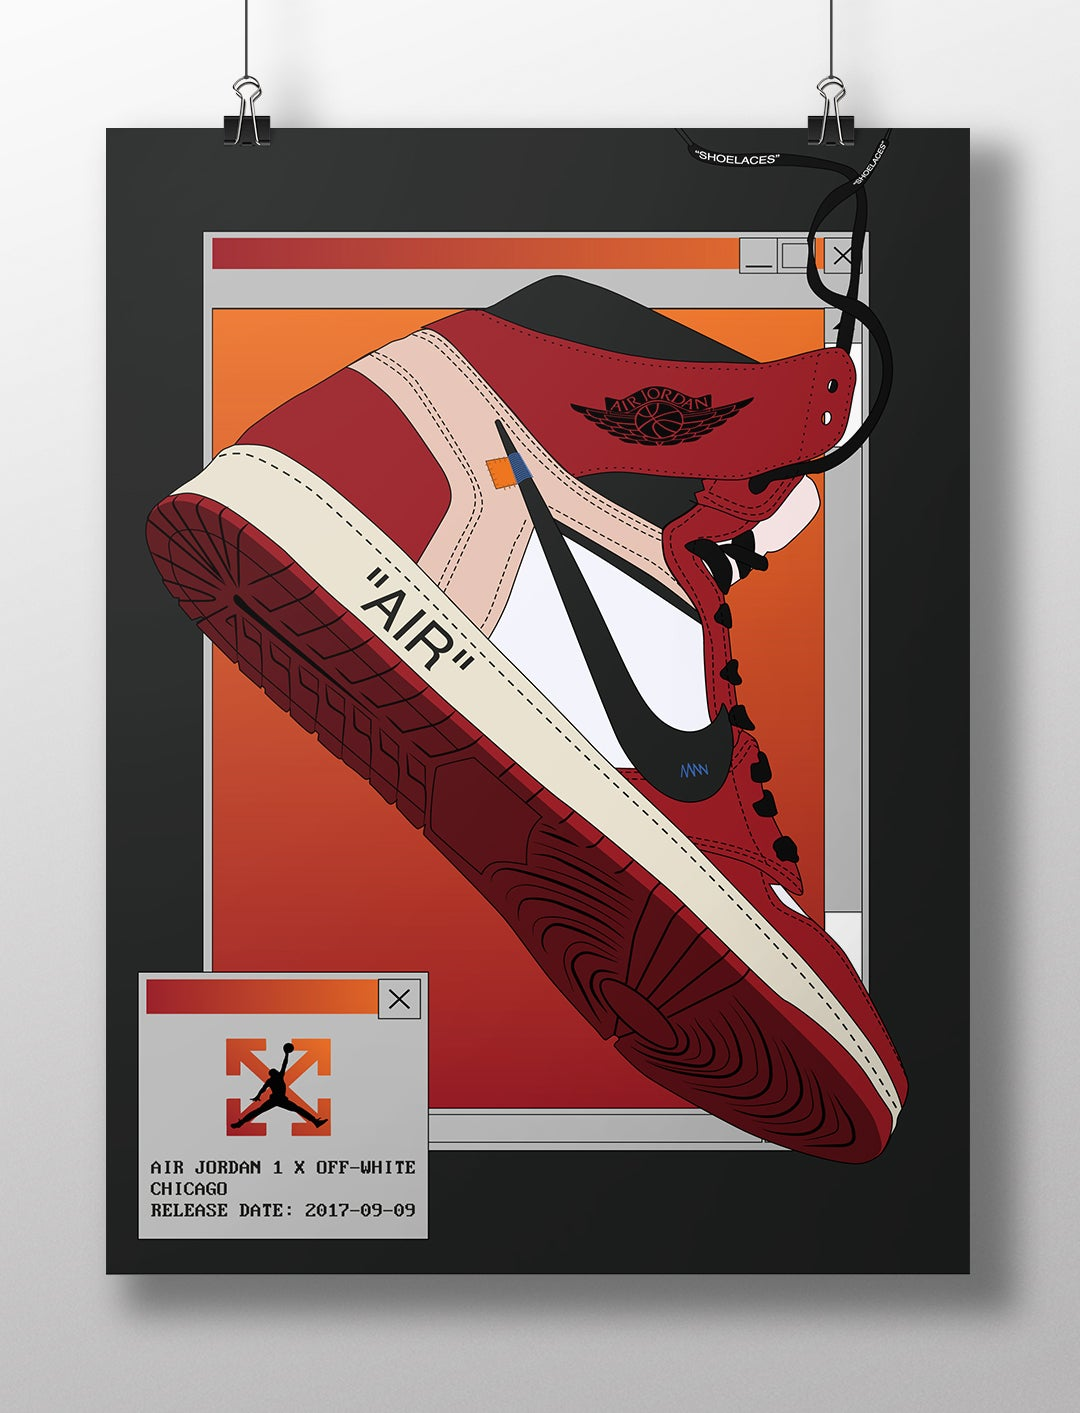 air jordan 1 off white chicago